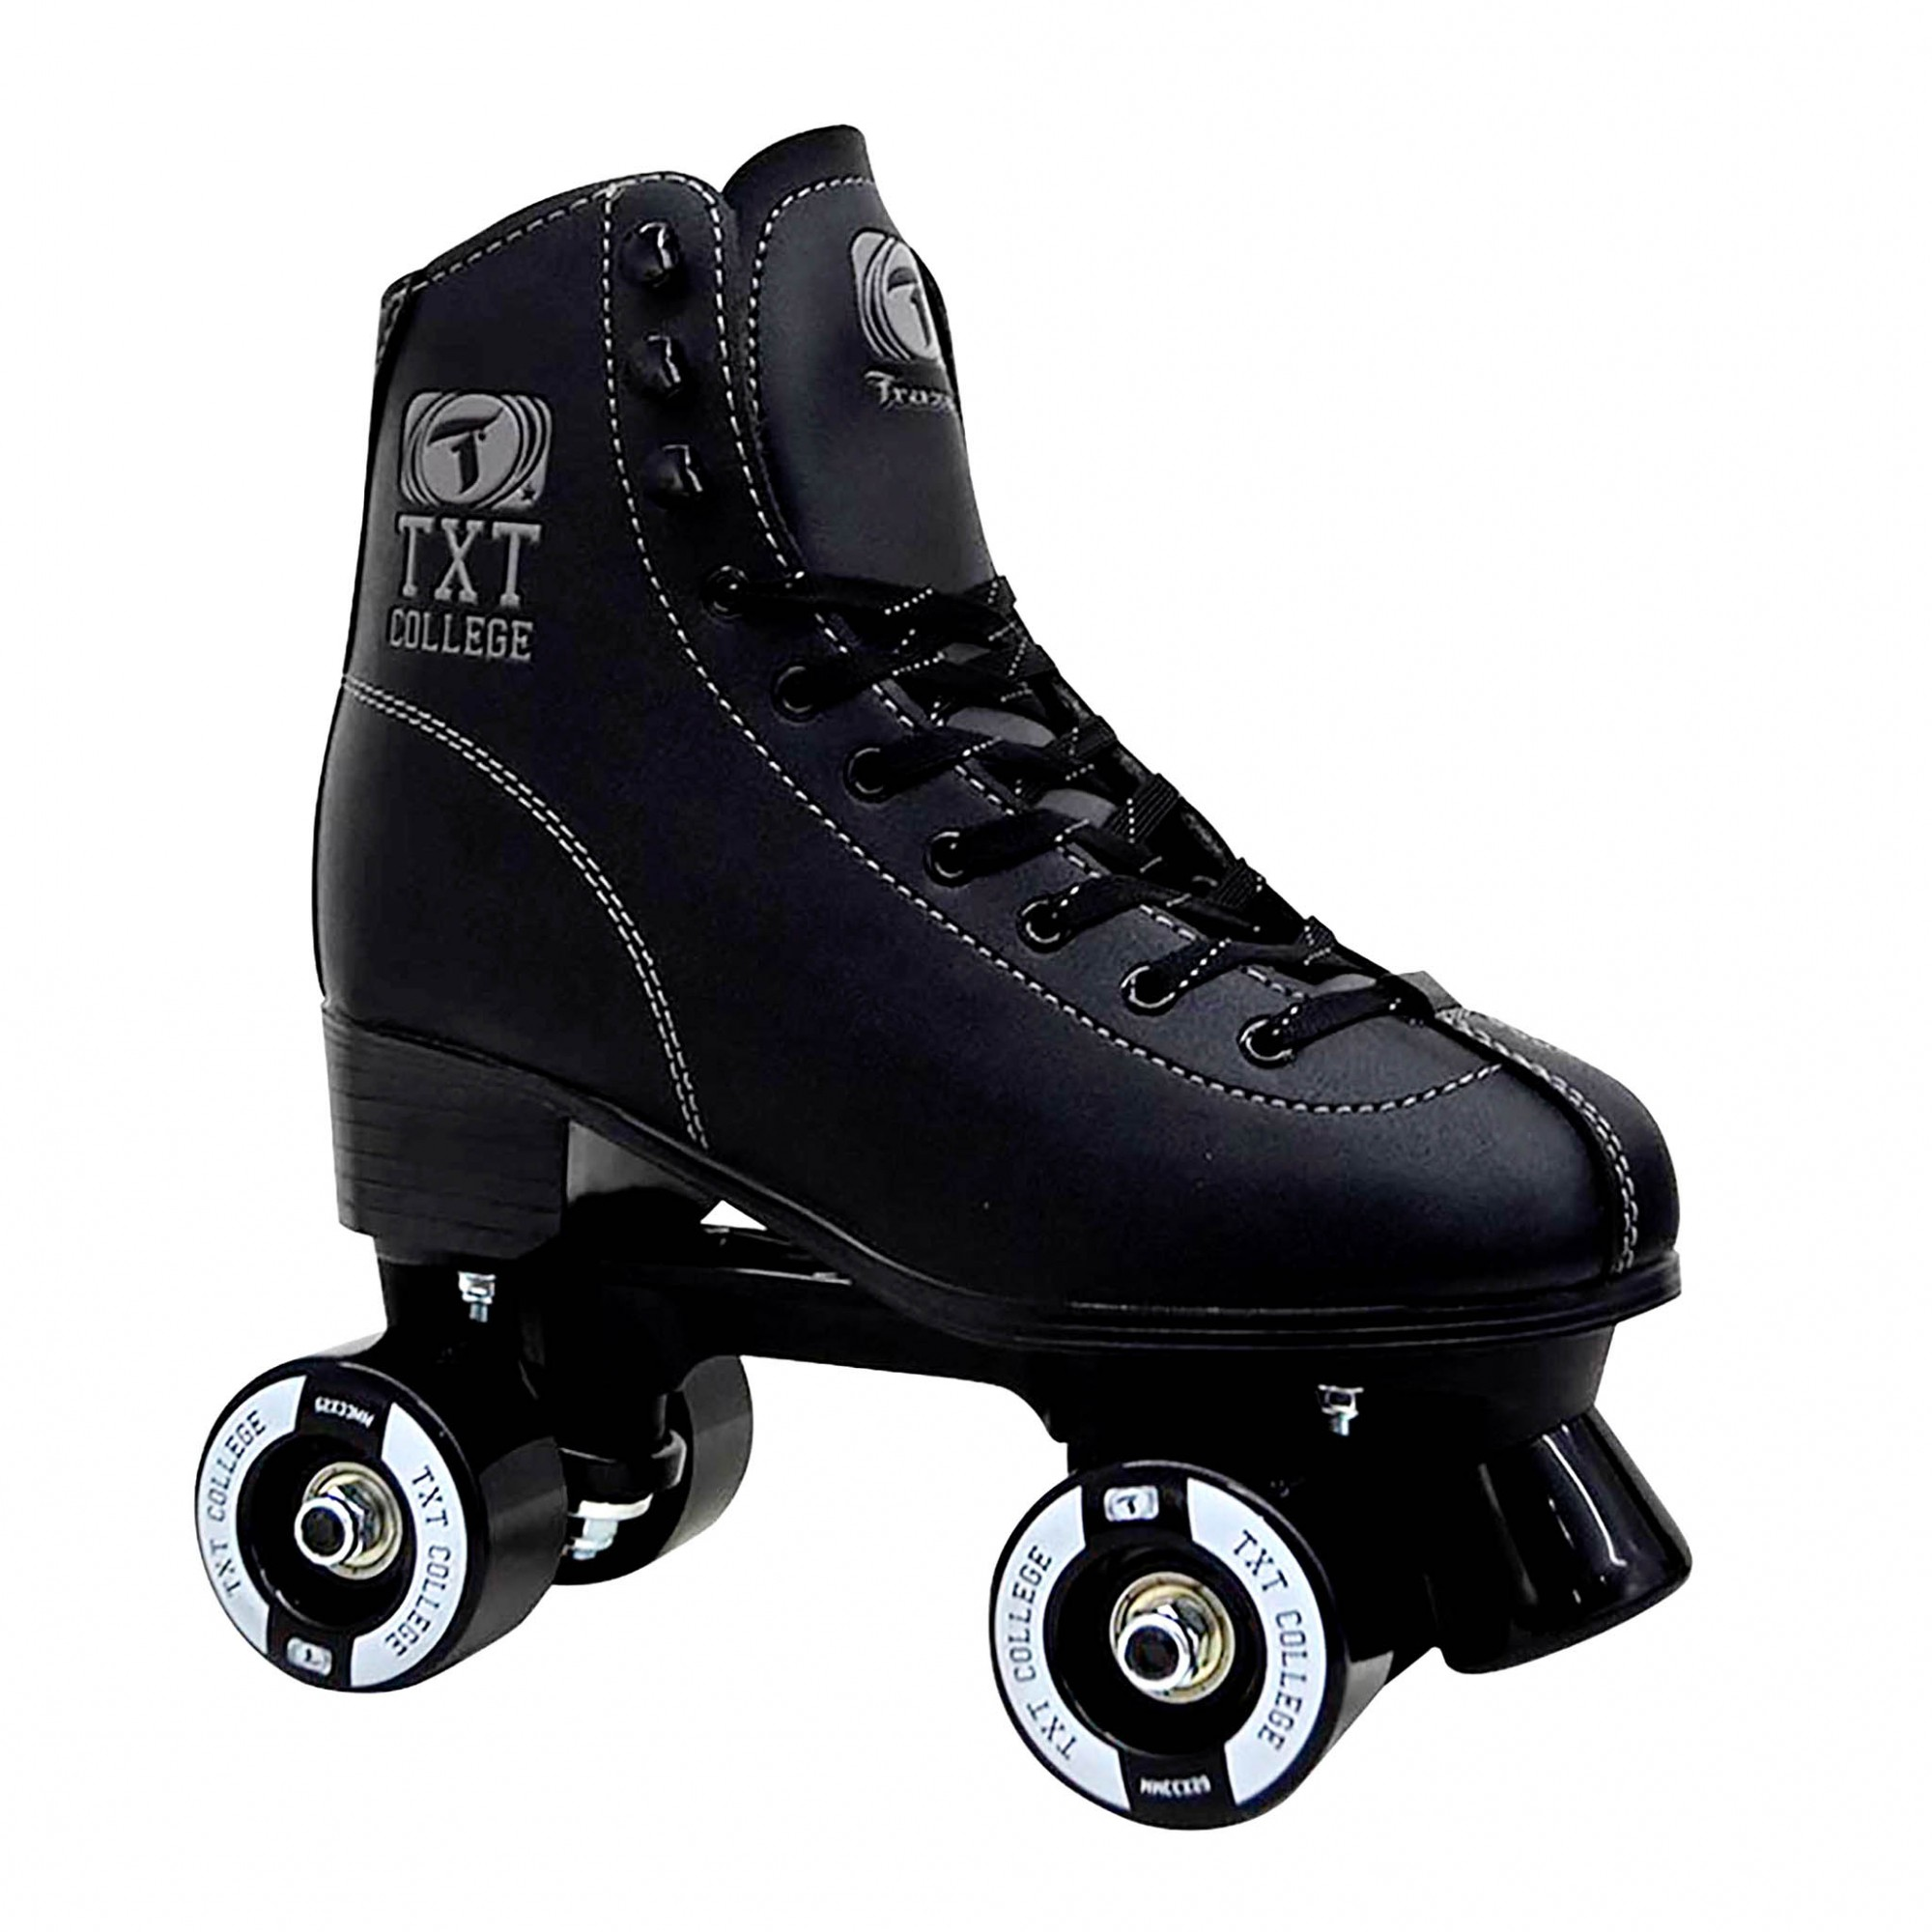 Patins Traxart Quad TXT College Black - ABEC-7